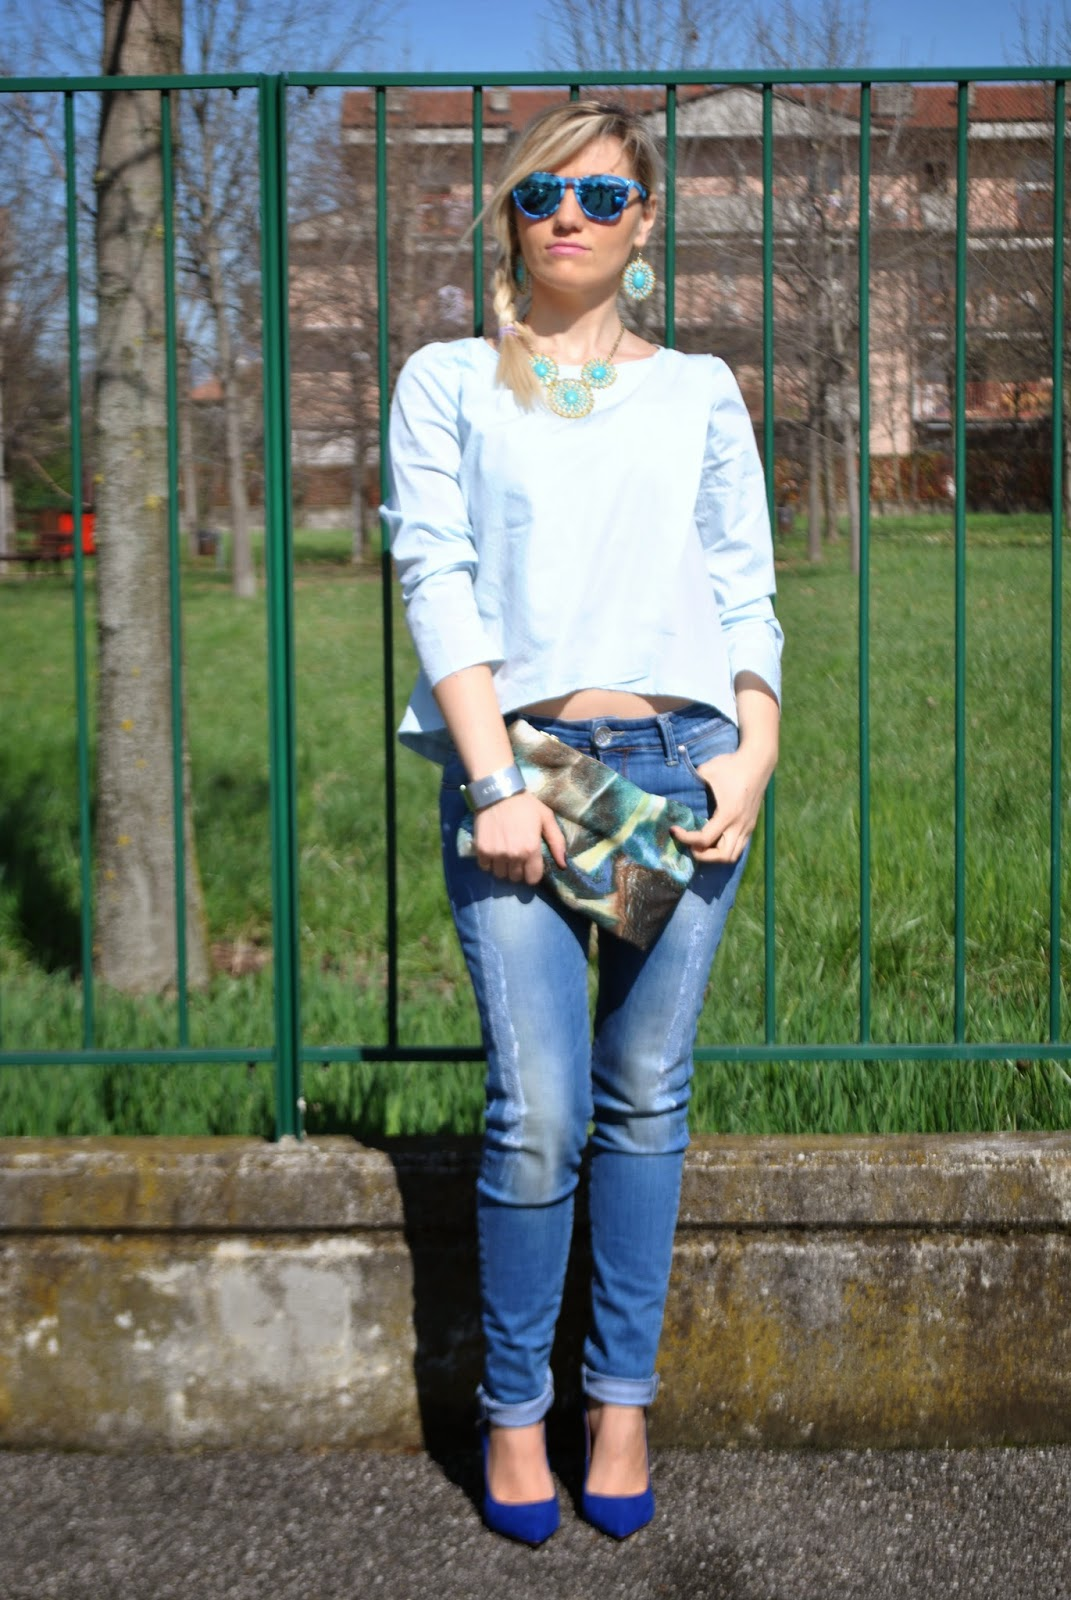 outfit azzurro outfit blu outfit jeans e camicia outfit jeans e tacchi mariafelicia magno colorblock by felym mariafelicia magno fashion blogger come abbinare il blu scarpe blu outfit scarpe blu scarpe blu zara camicia azzurra outfit primaverili casual outfit primaverili donna outfit marzo 2015 spring outfit how to wear jeans and heels how to wear jeans and shirt blue outfit spring outfit fashion bloggers italy girls blonde hair blue sunglasses